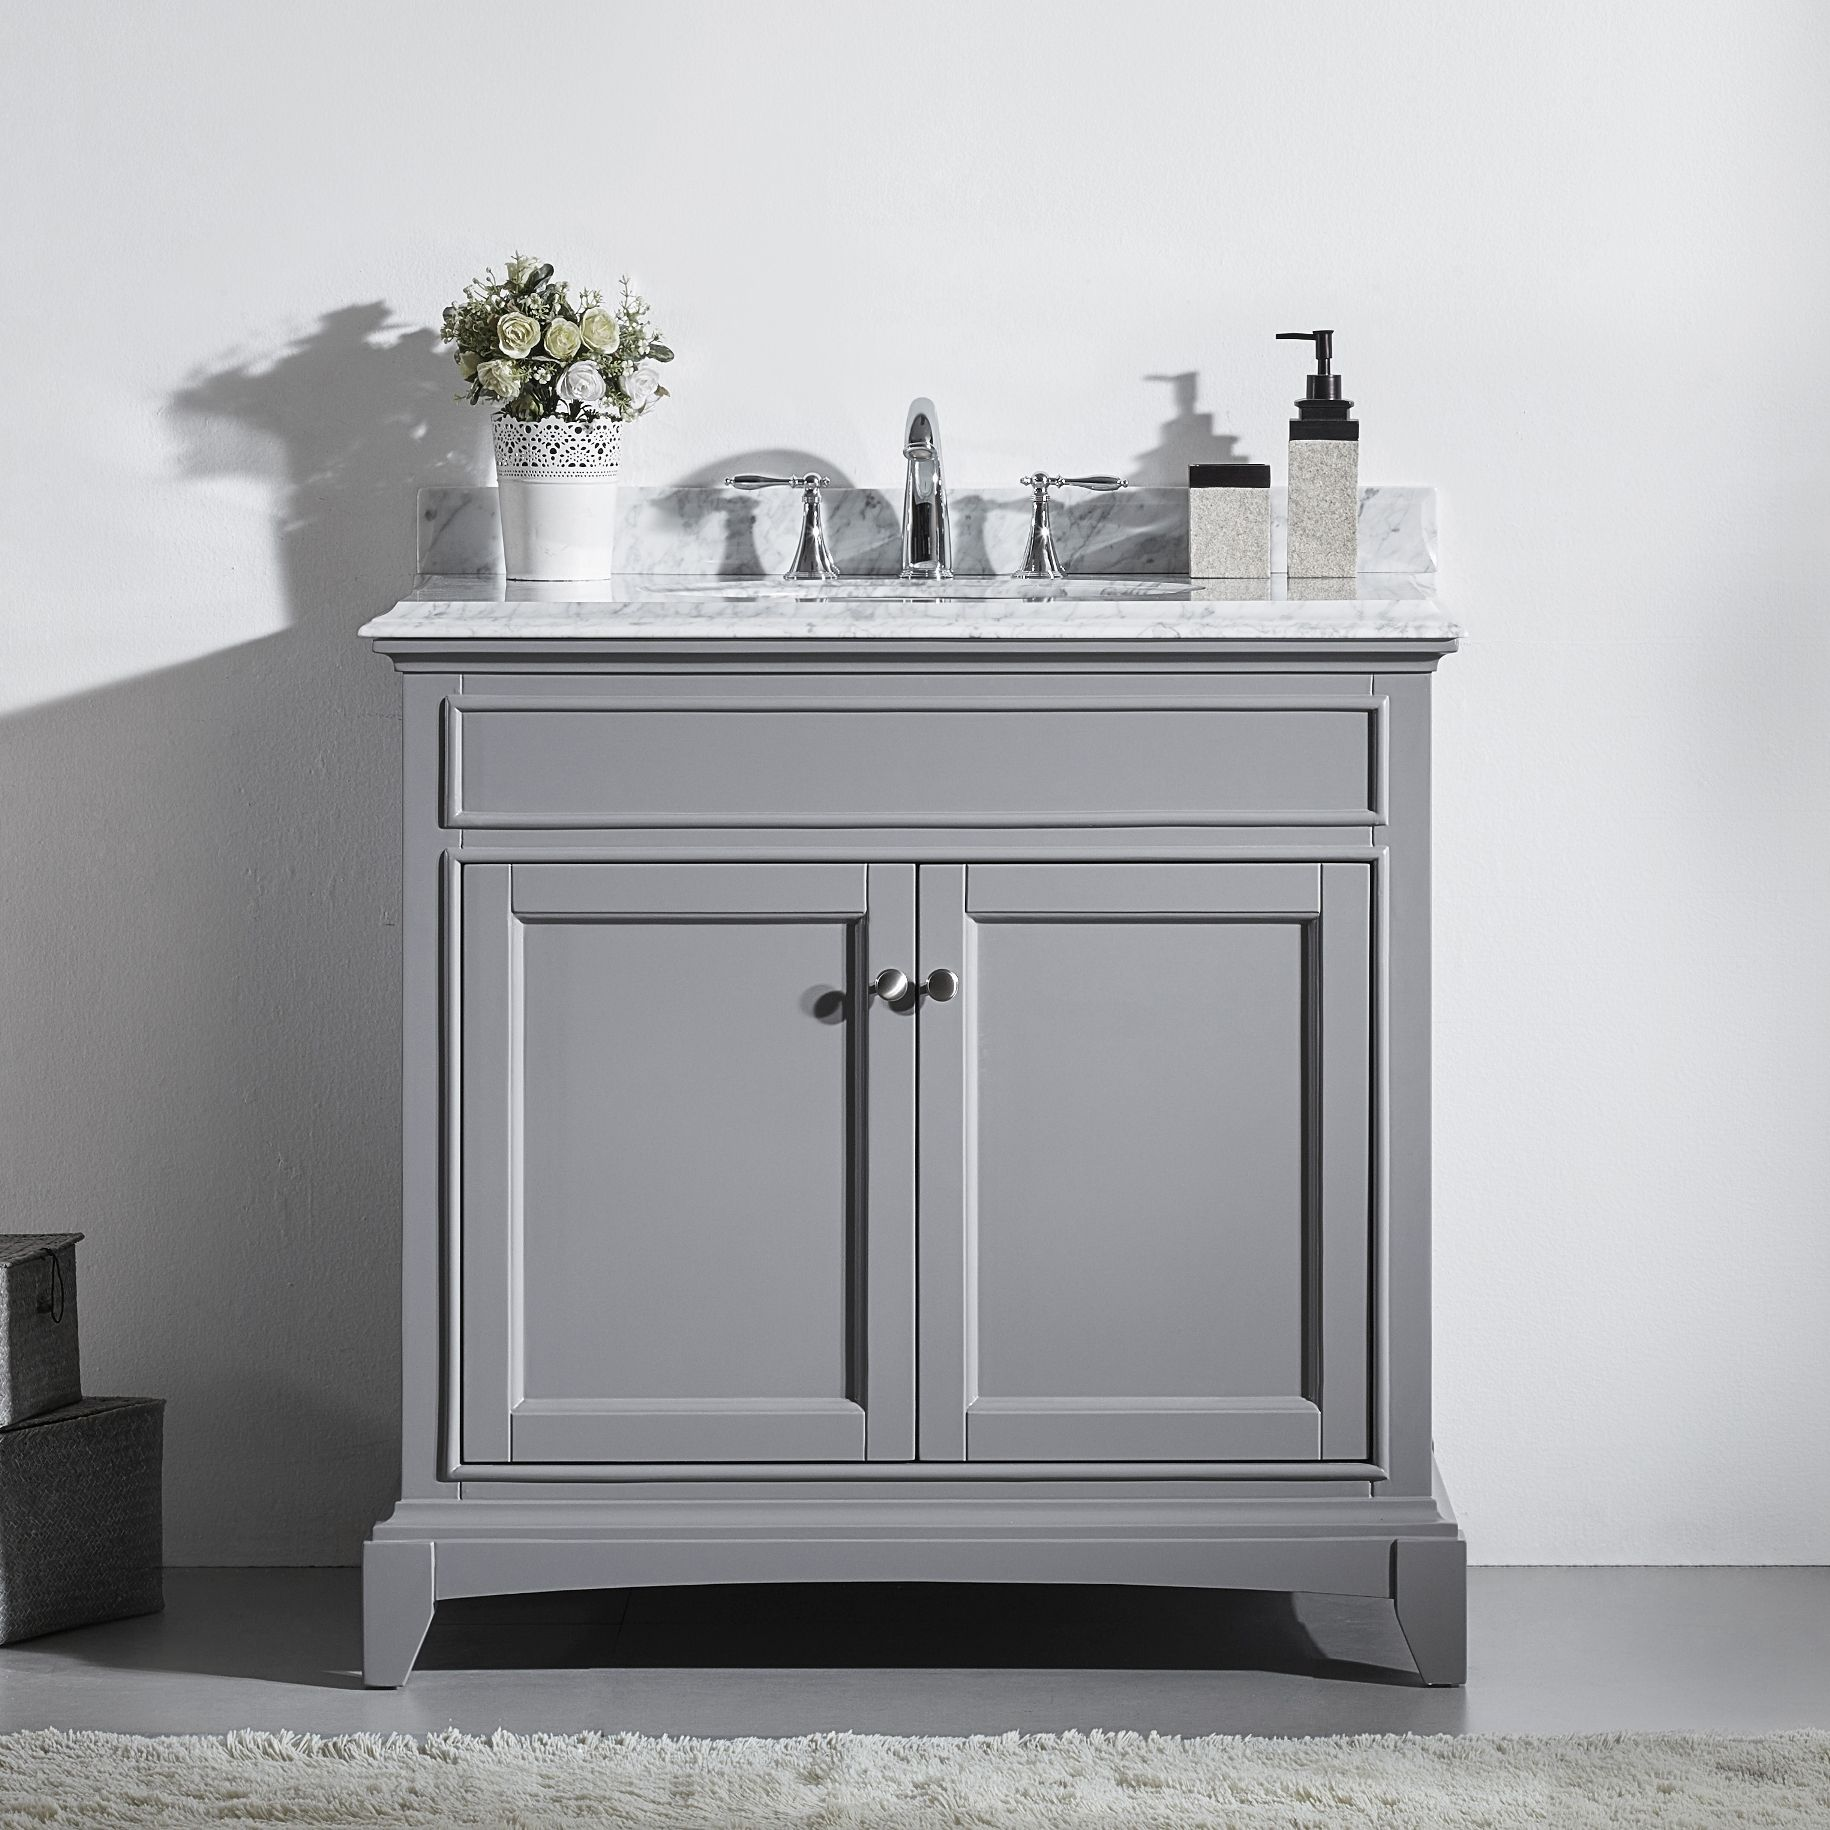 Eviva Stamford 36 Traditional Single Sink Bathroom Vanity In Grey Evvn709 36gr At Discountbathroomva Grey Bathroom Vanity Bathroom Sink Vanity Bathroom Vanity